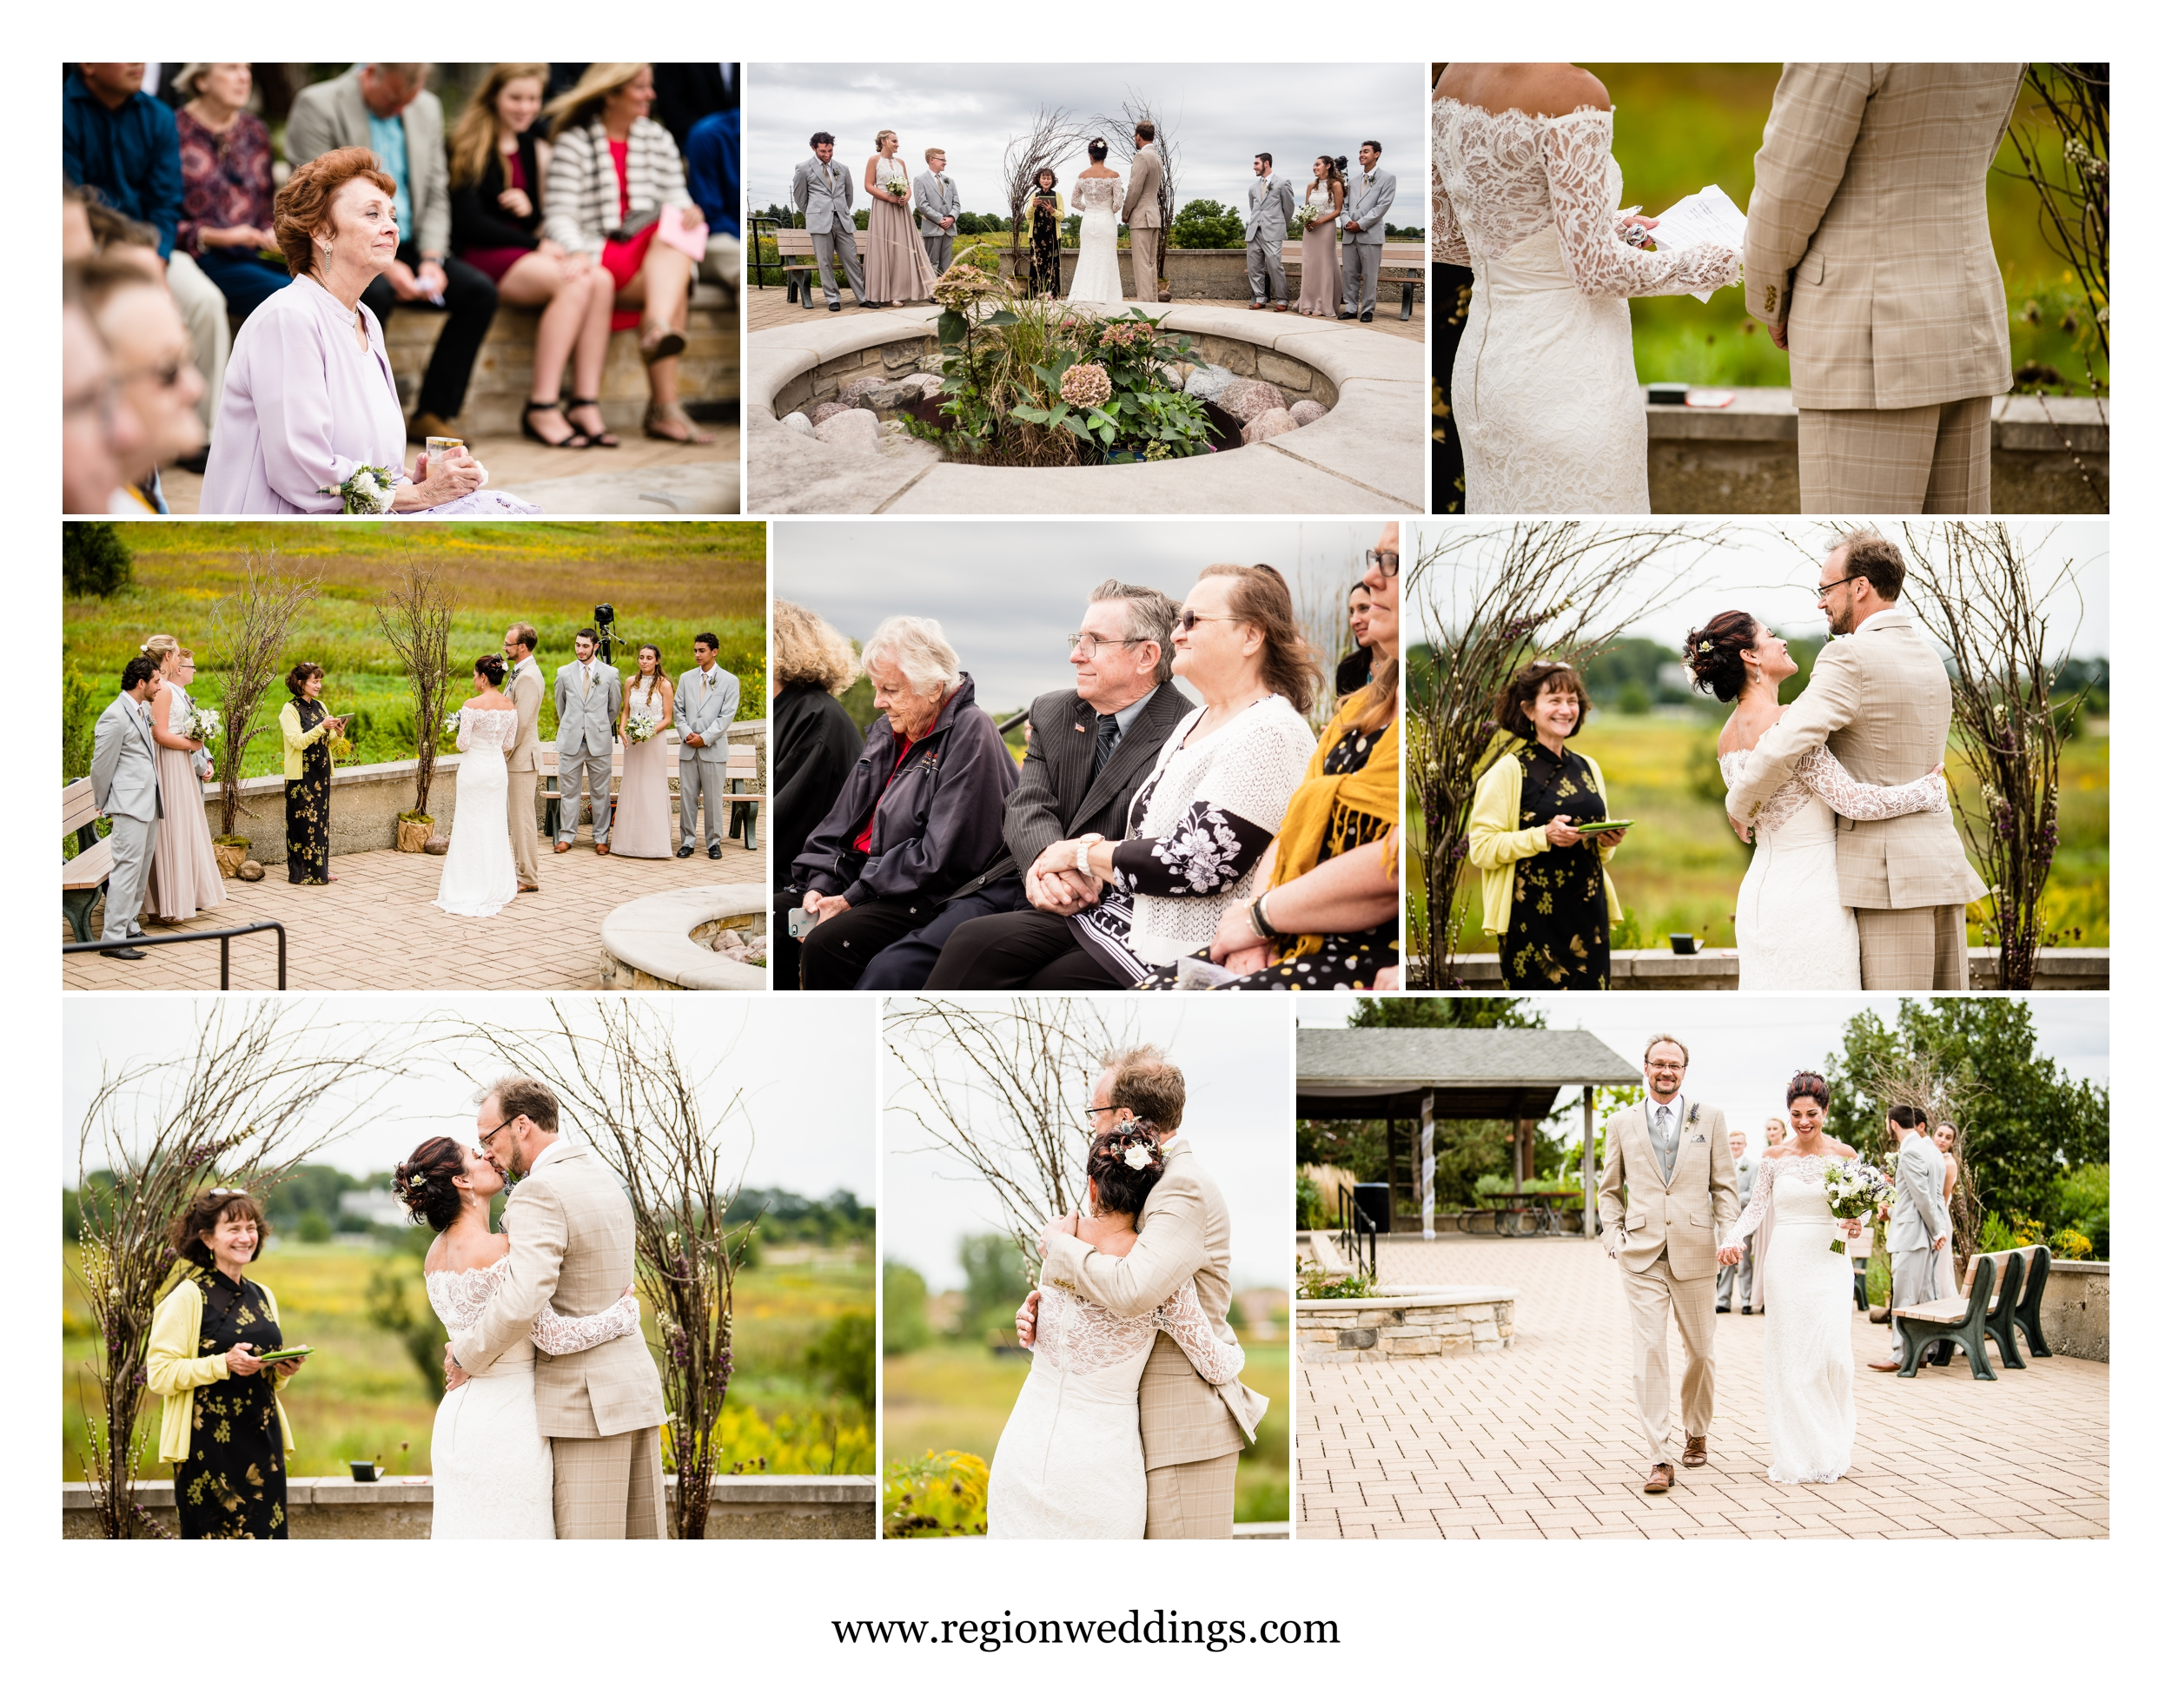 Exchanging wedding vows at Peck Farm Park in Geneva, IL.